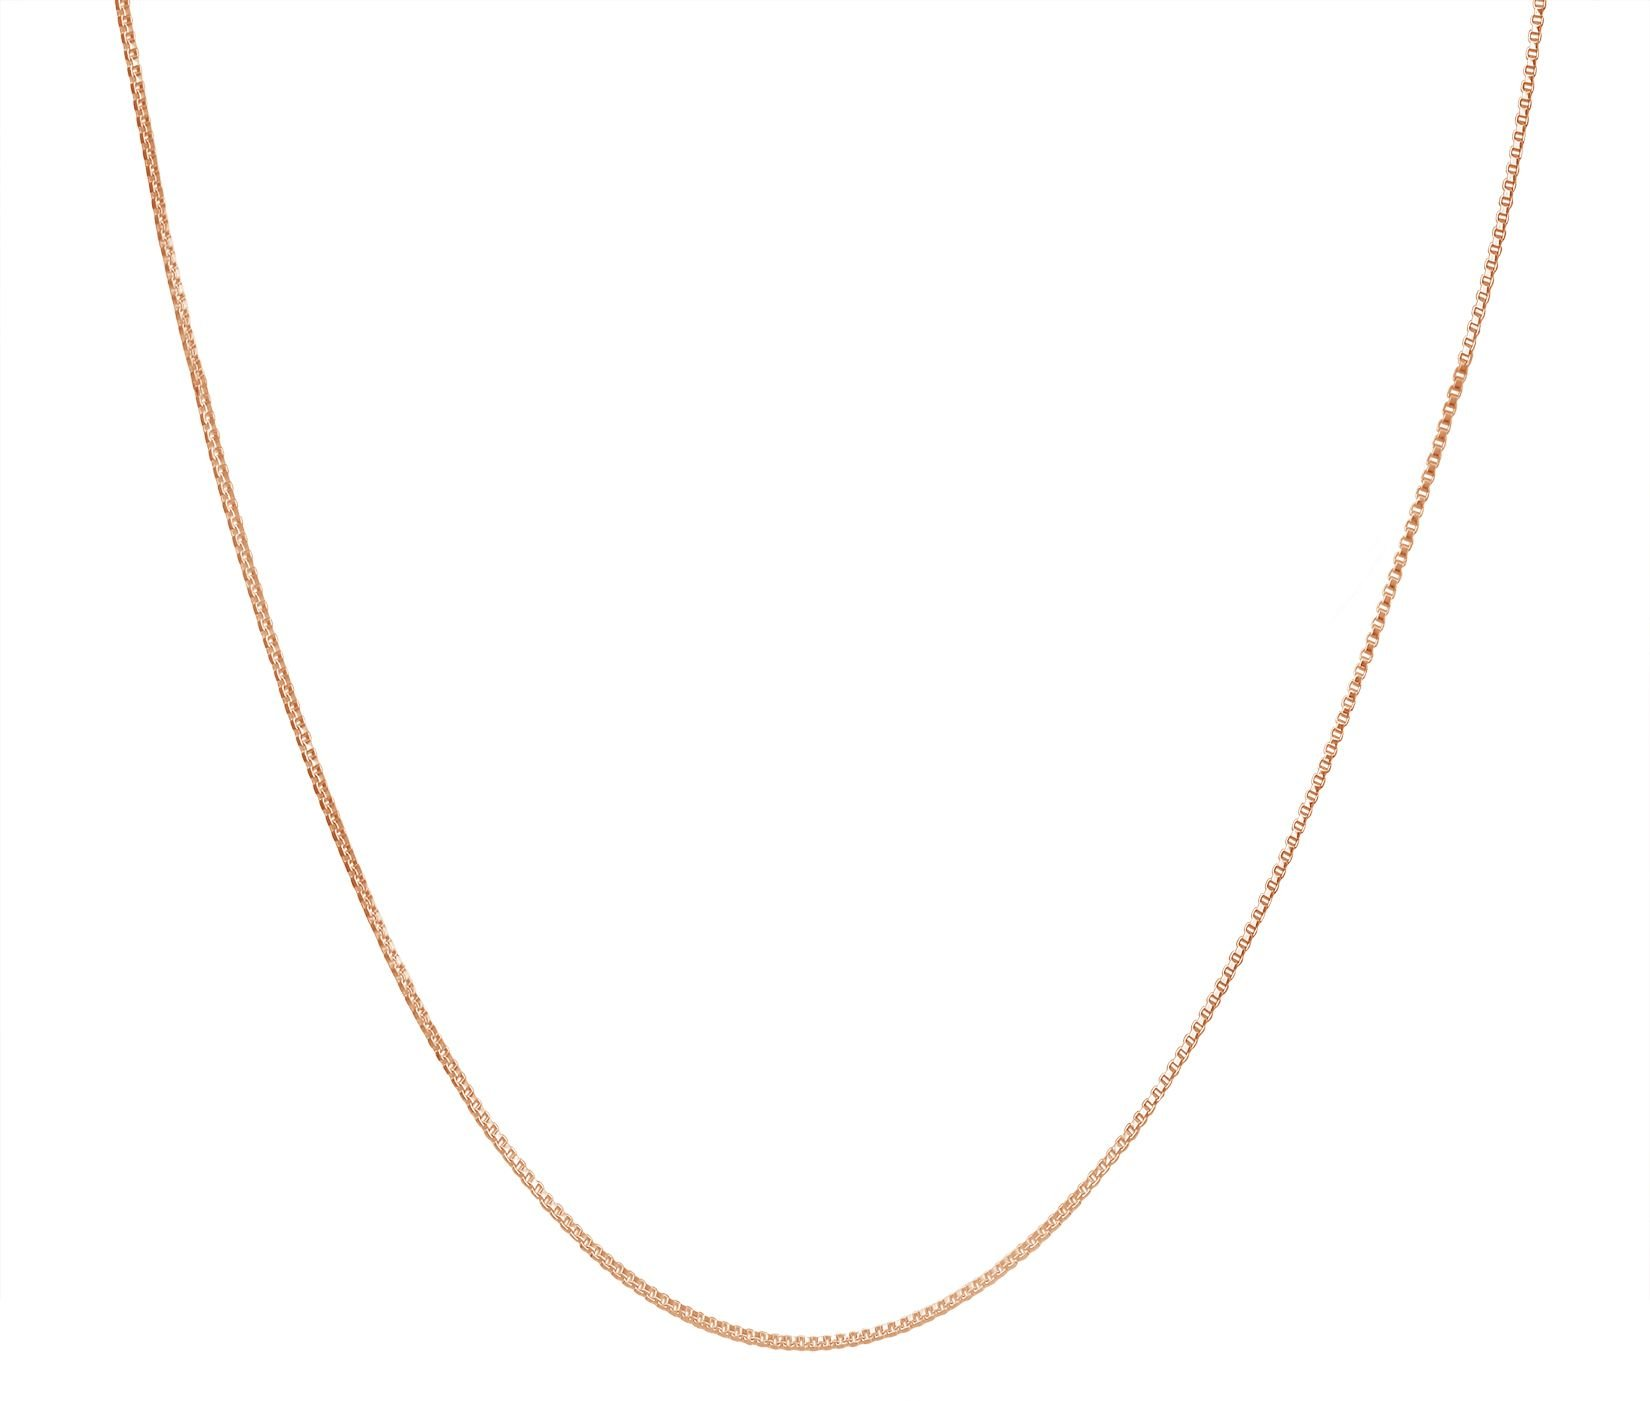 KEZEF Creations Rose Gold Plated Sterling Silver Necklace - 1mm Box Chain - Hypoallergenic and Tarnish Resistant - Classic Design and Comfortable Fit - 34''